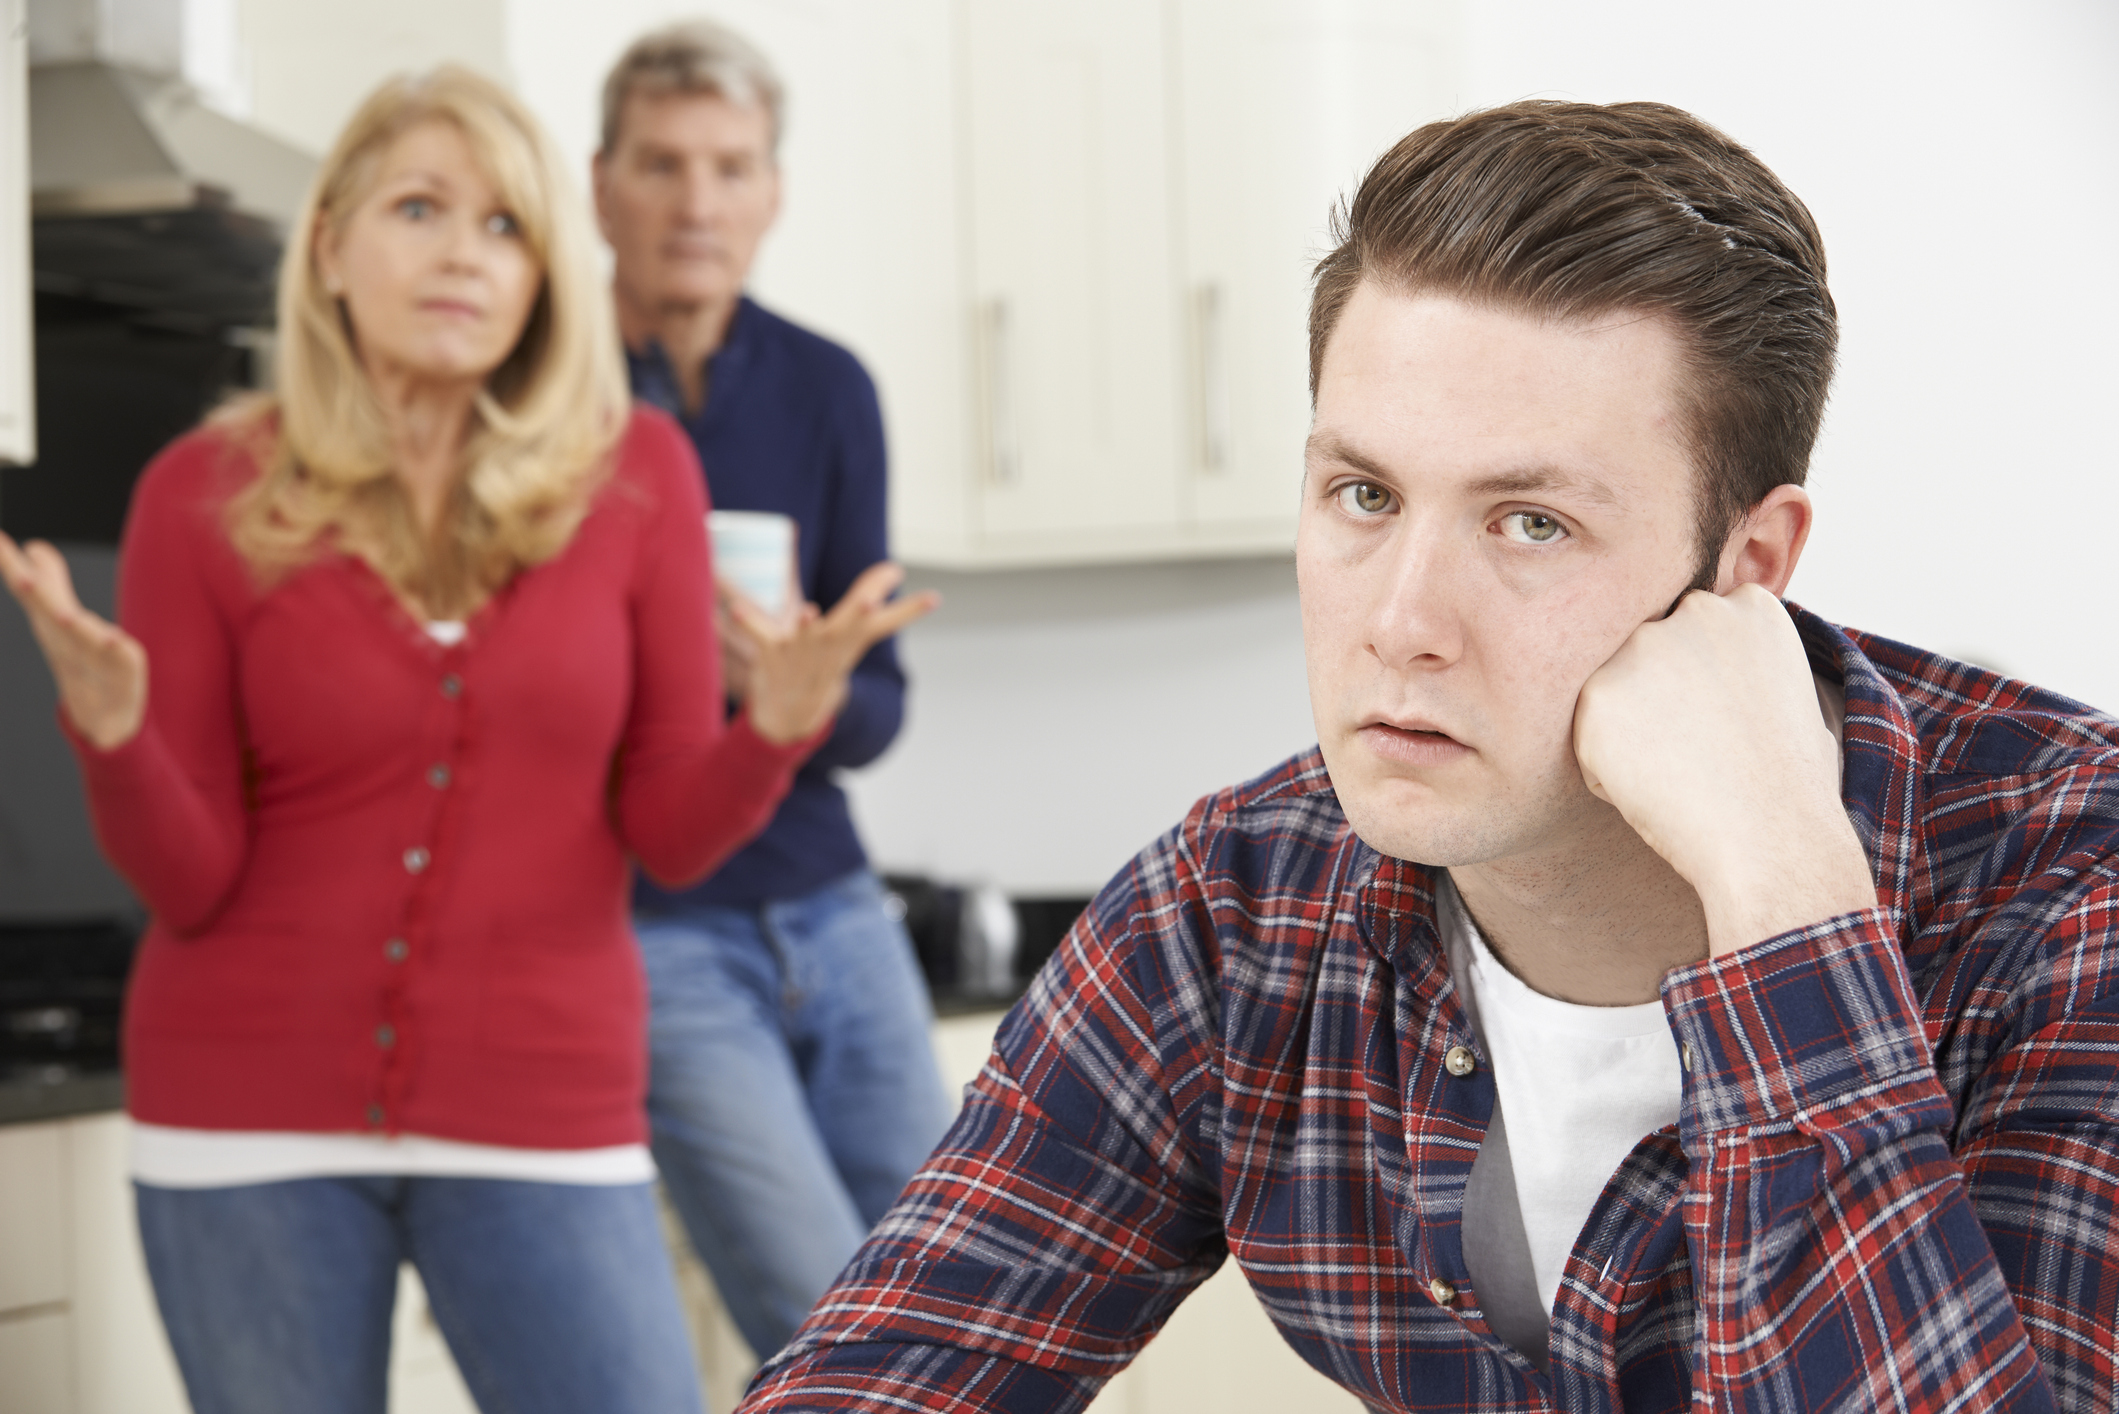 For The First Time Since The Great Depression, The Majority Of Americans Under 30 Are Living With Their Parents